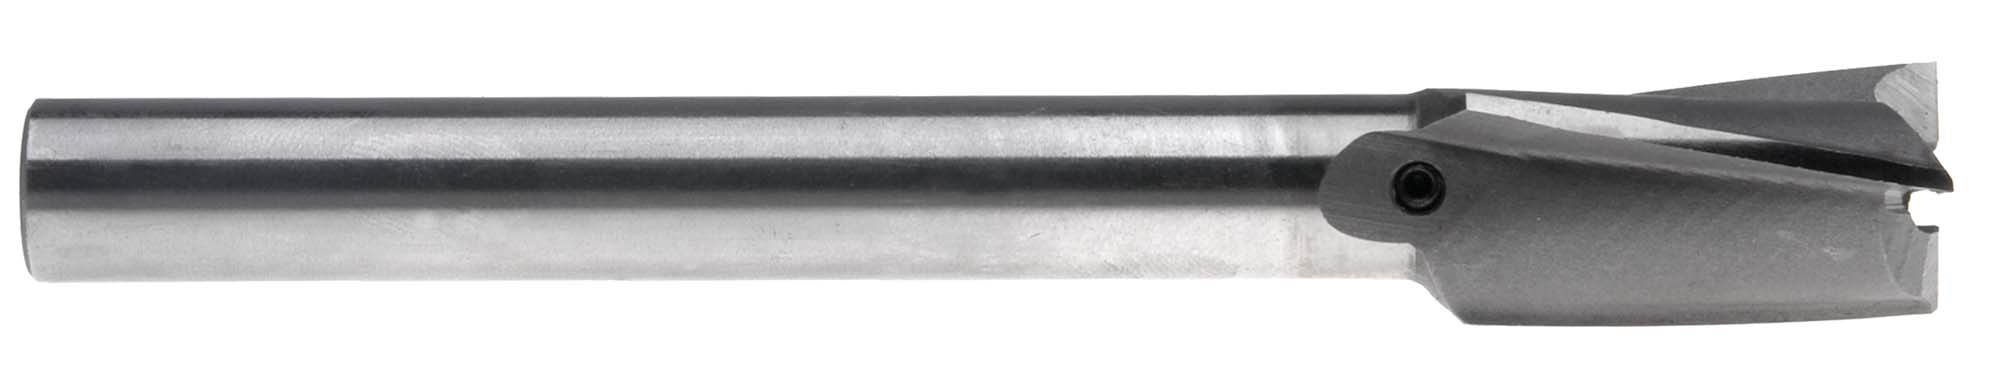 "1-1/16"" Straight Shank Counterbore, Interchangeable Pilot Type, High Speed Steel"